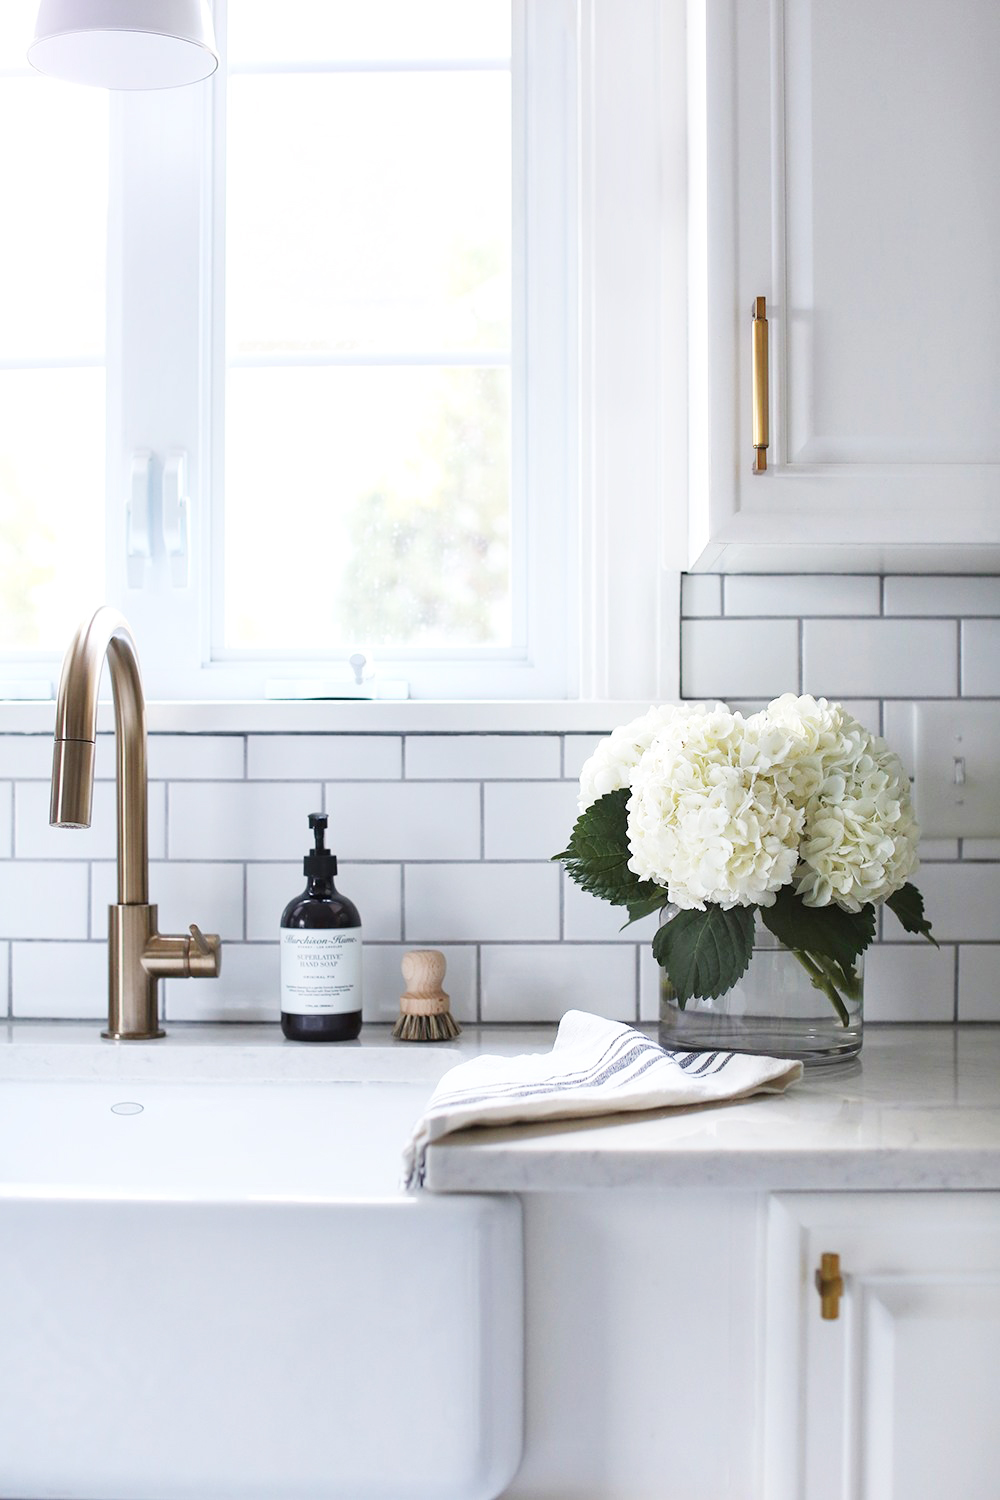 How to Choose a Kitchen Sink - roomfortuesday.com